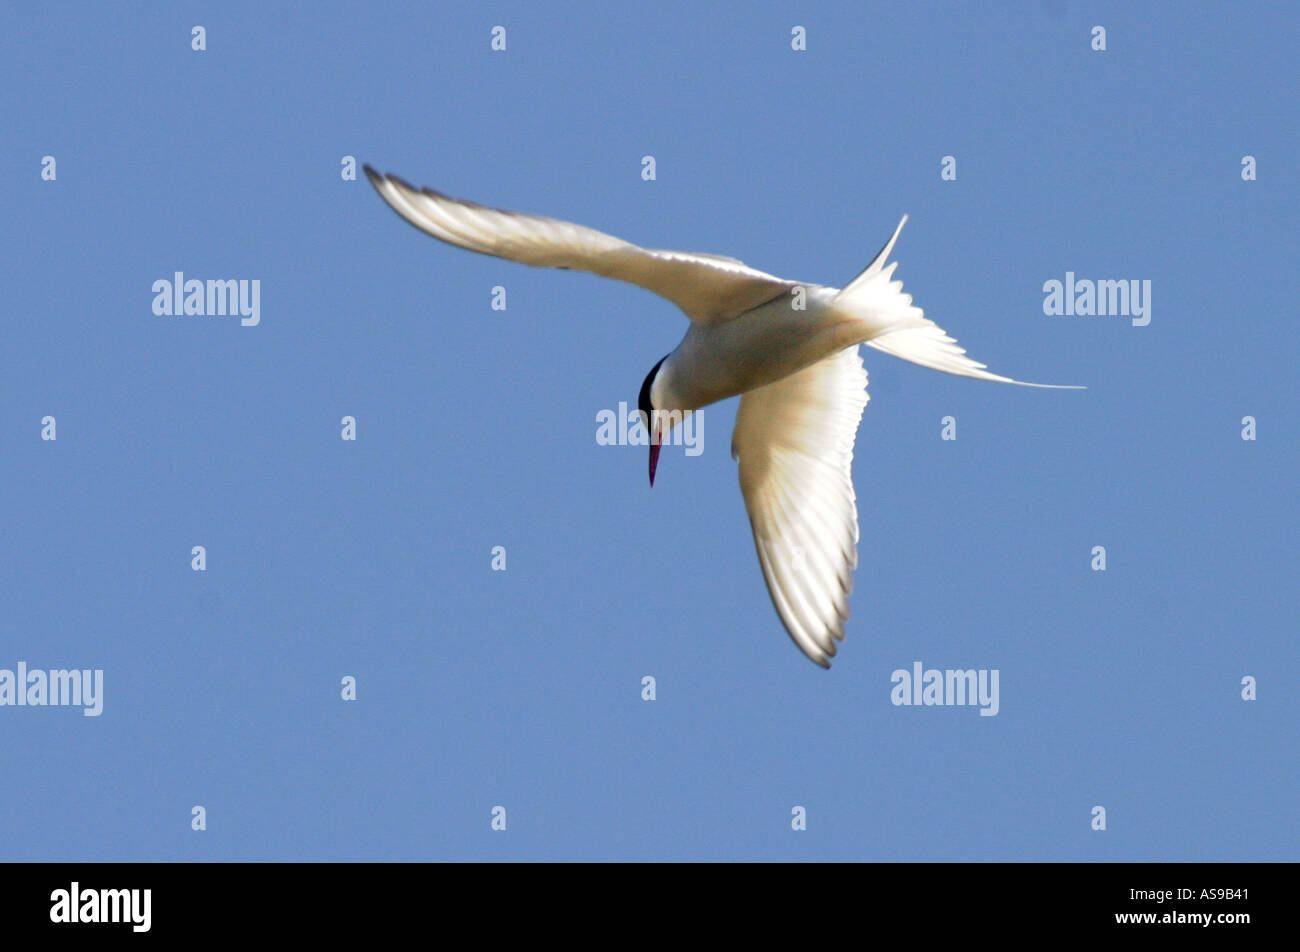 BT2-51D HOVERING ARCTIC TERN - Stock Image